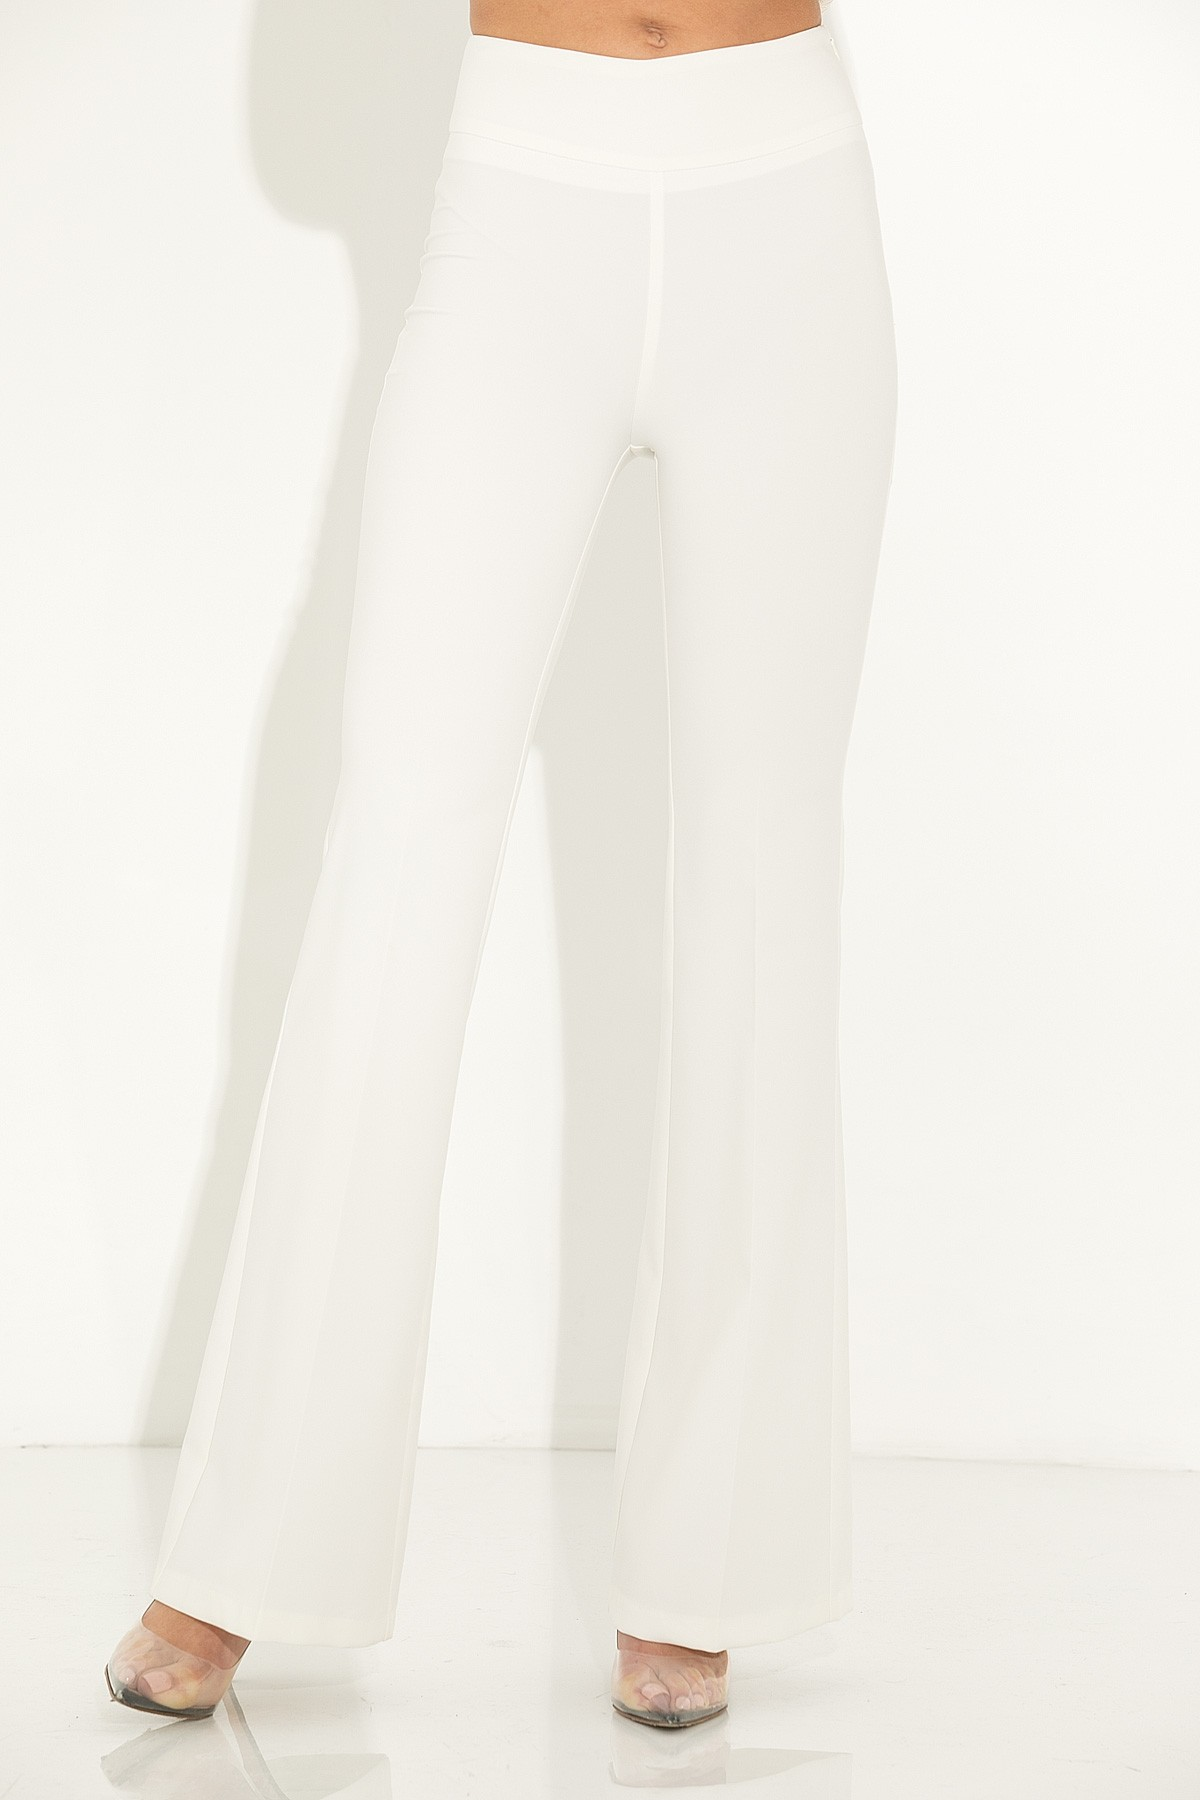 OFF WHITE HIGH WAISTED FLARED PANTS